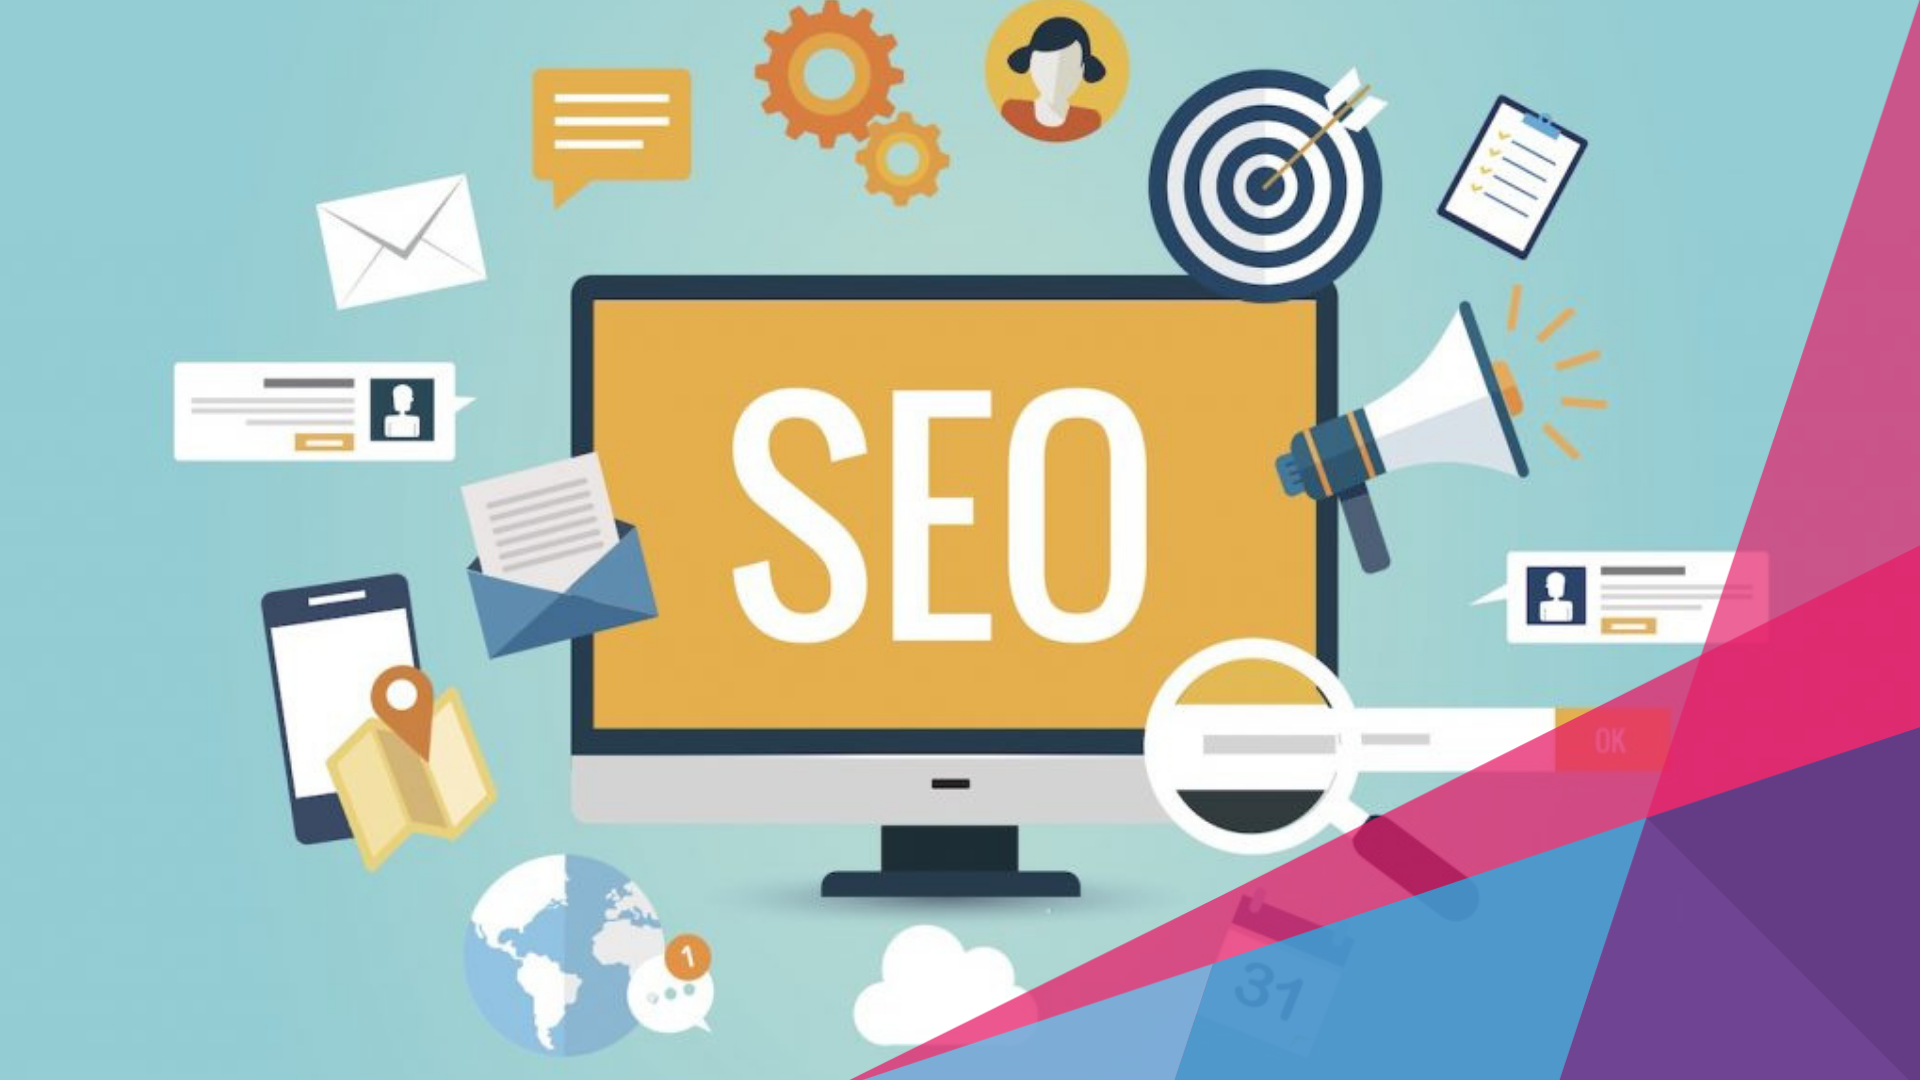 8 SEO Trends That Will Impact Your Ranking In 2018